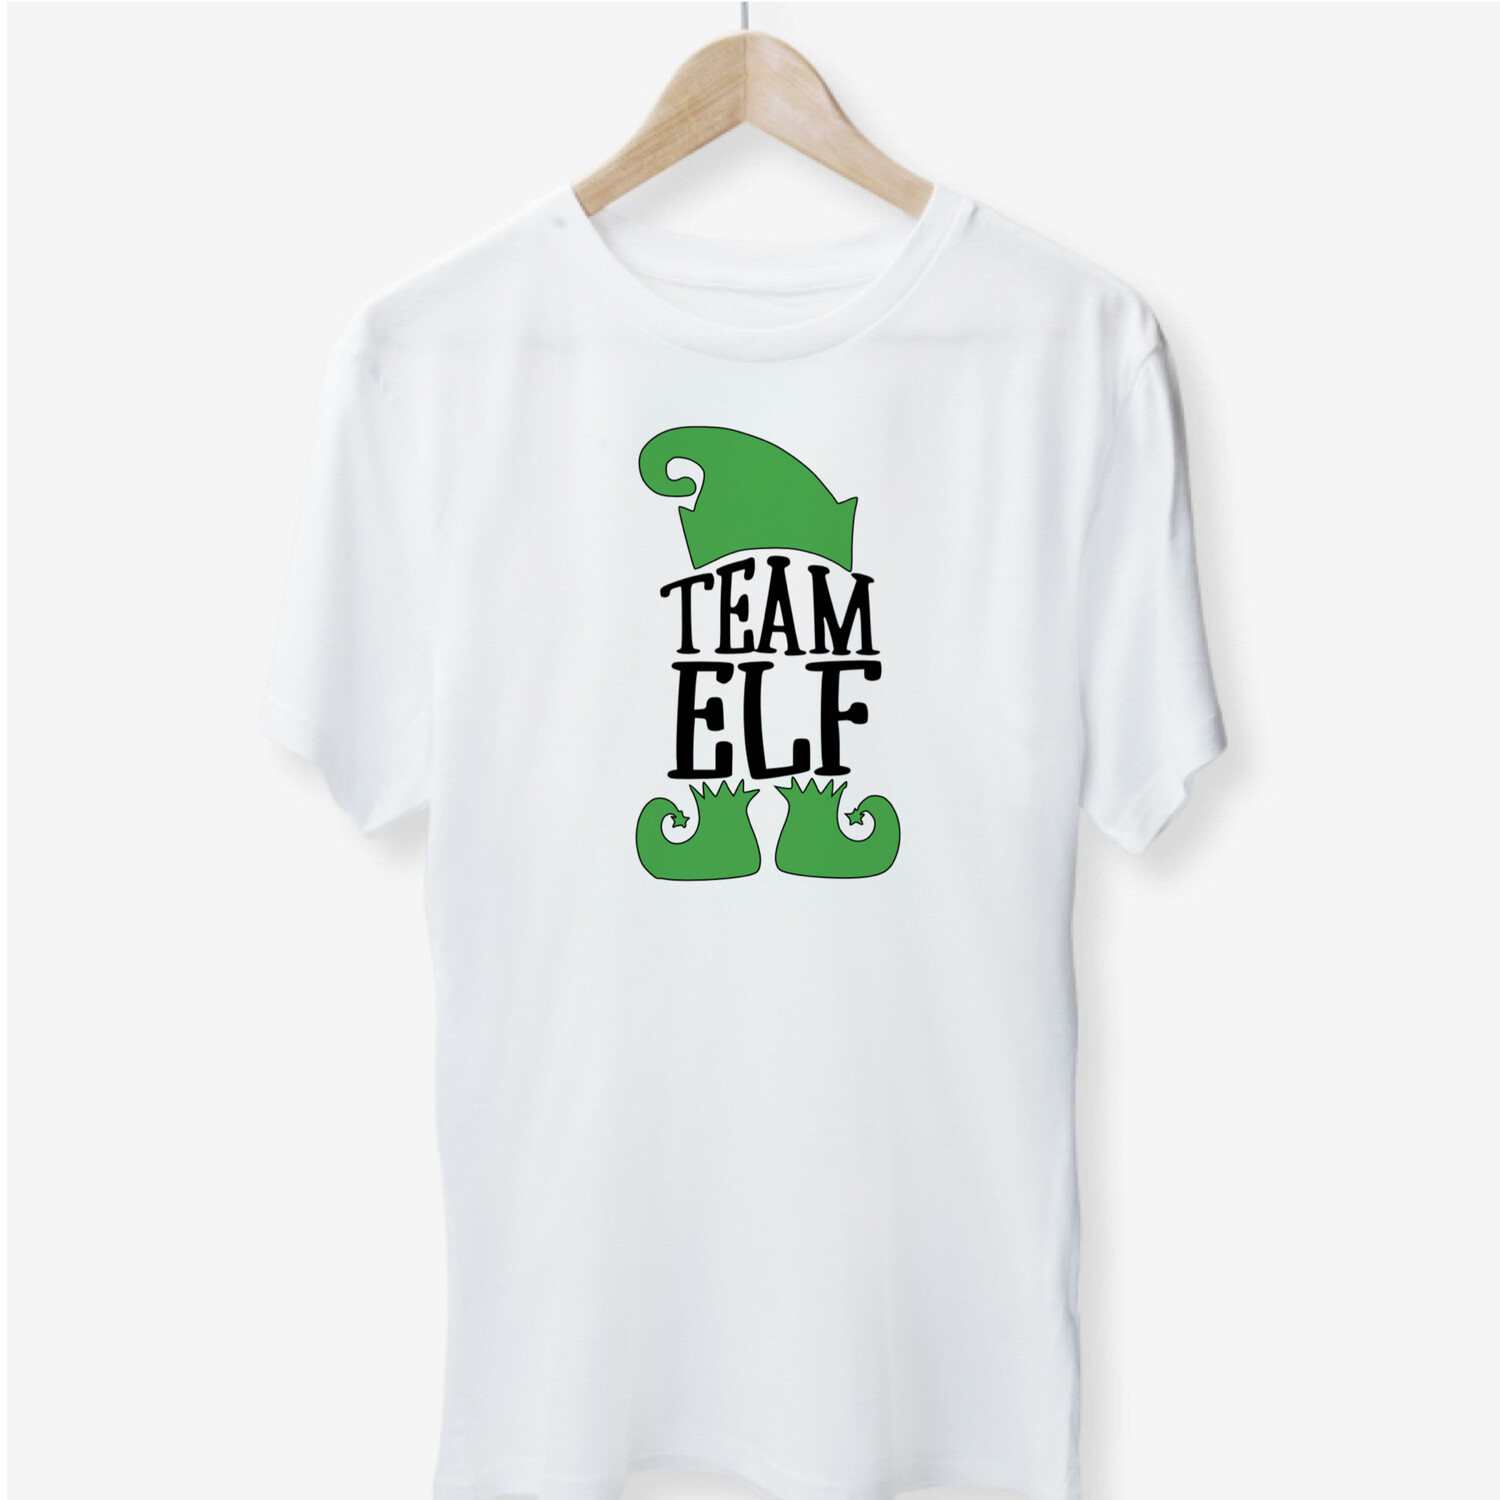 Team Elf Tshirt